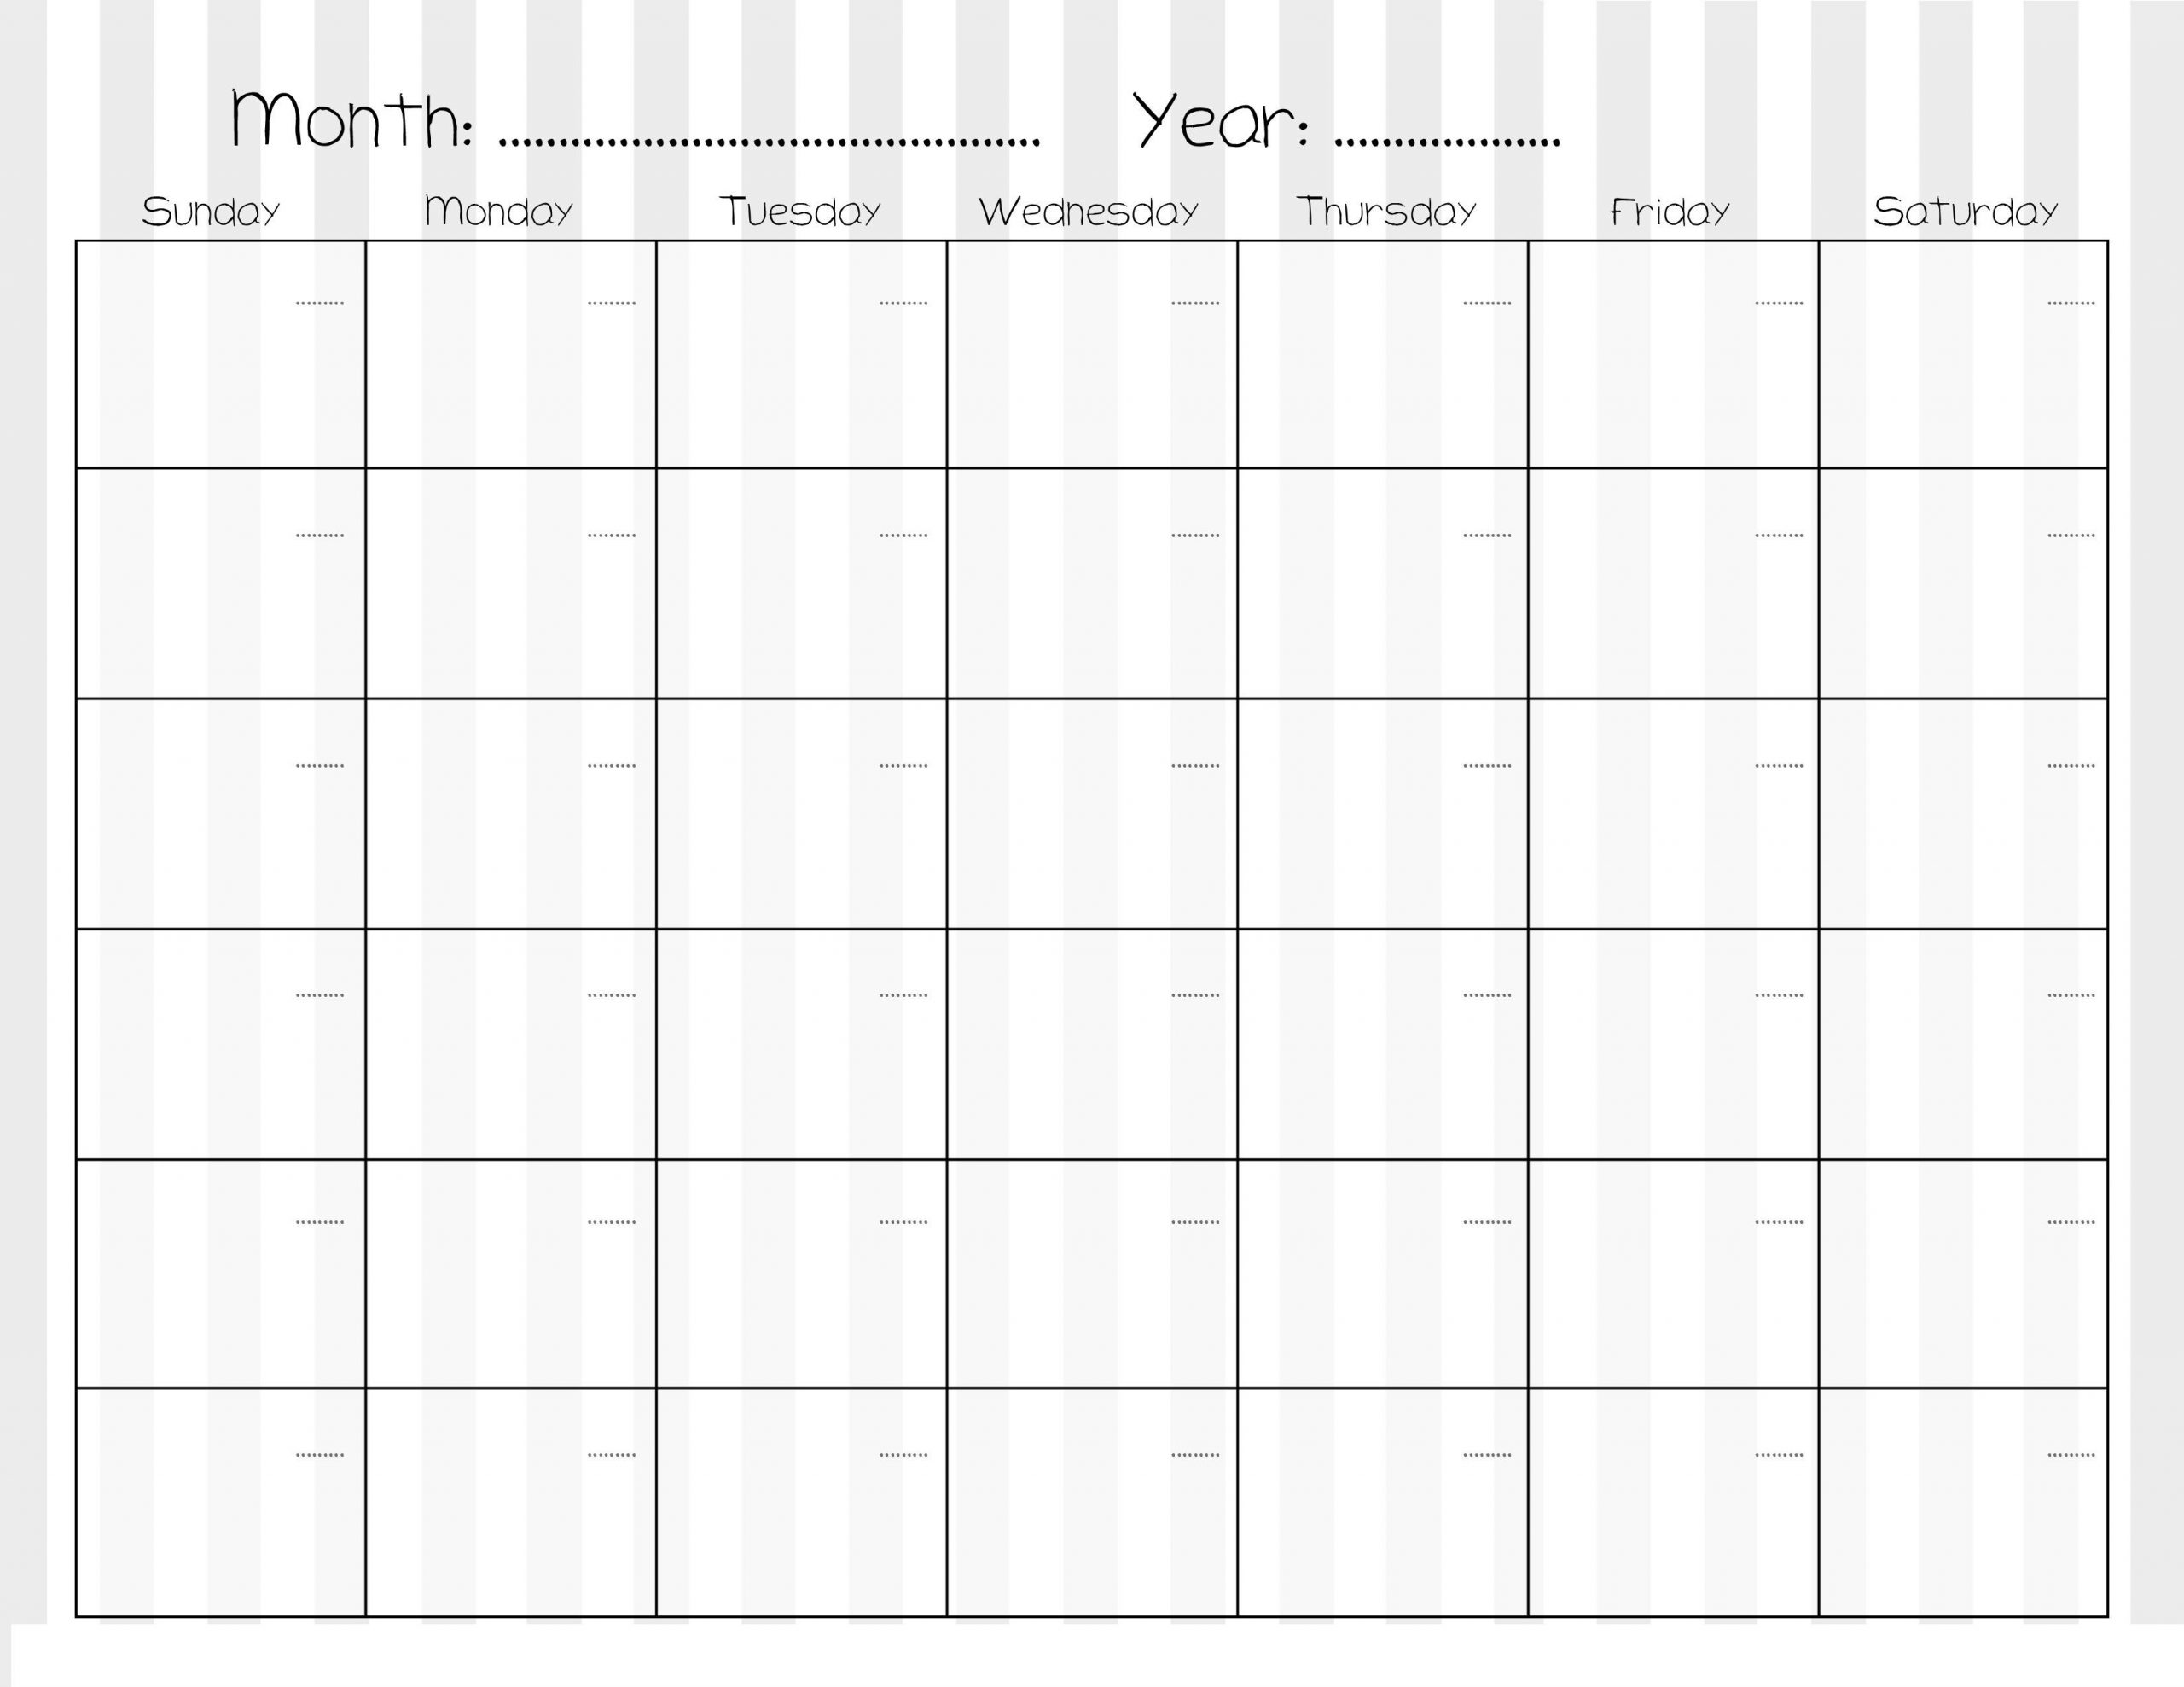 Sample Calendars To Print | Activity Shelter